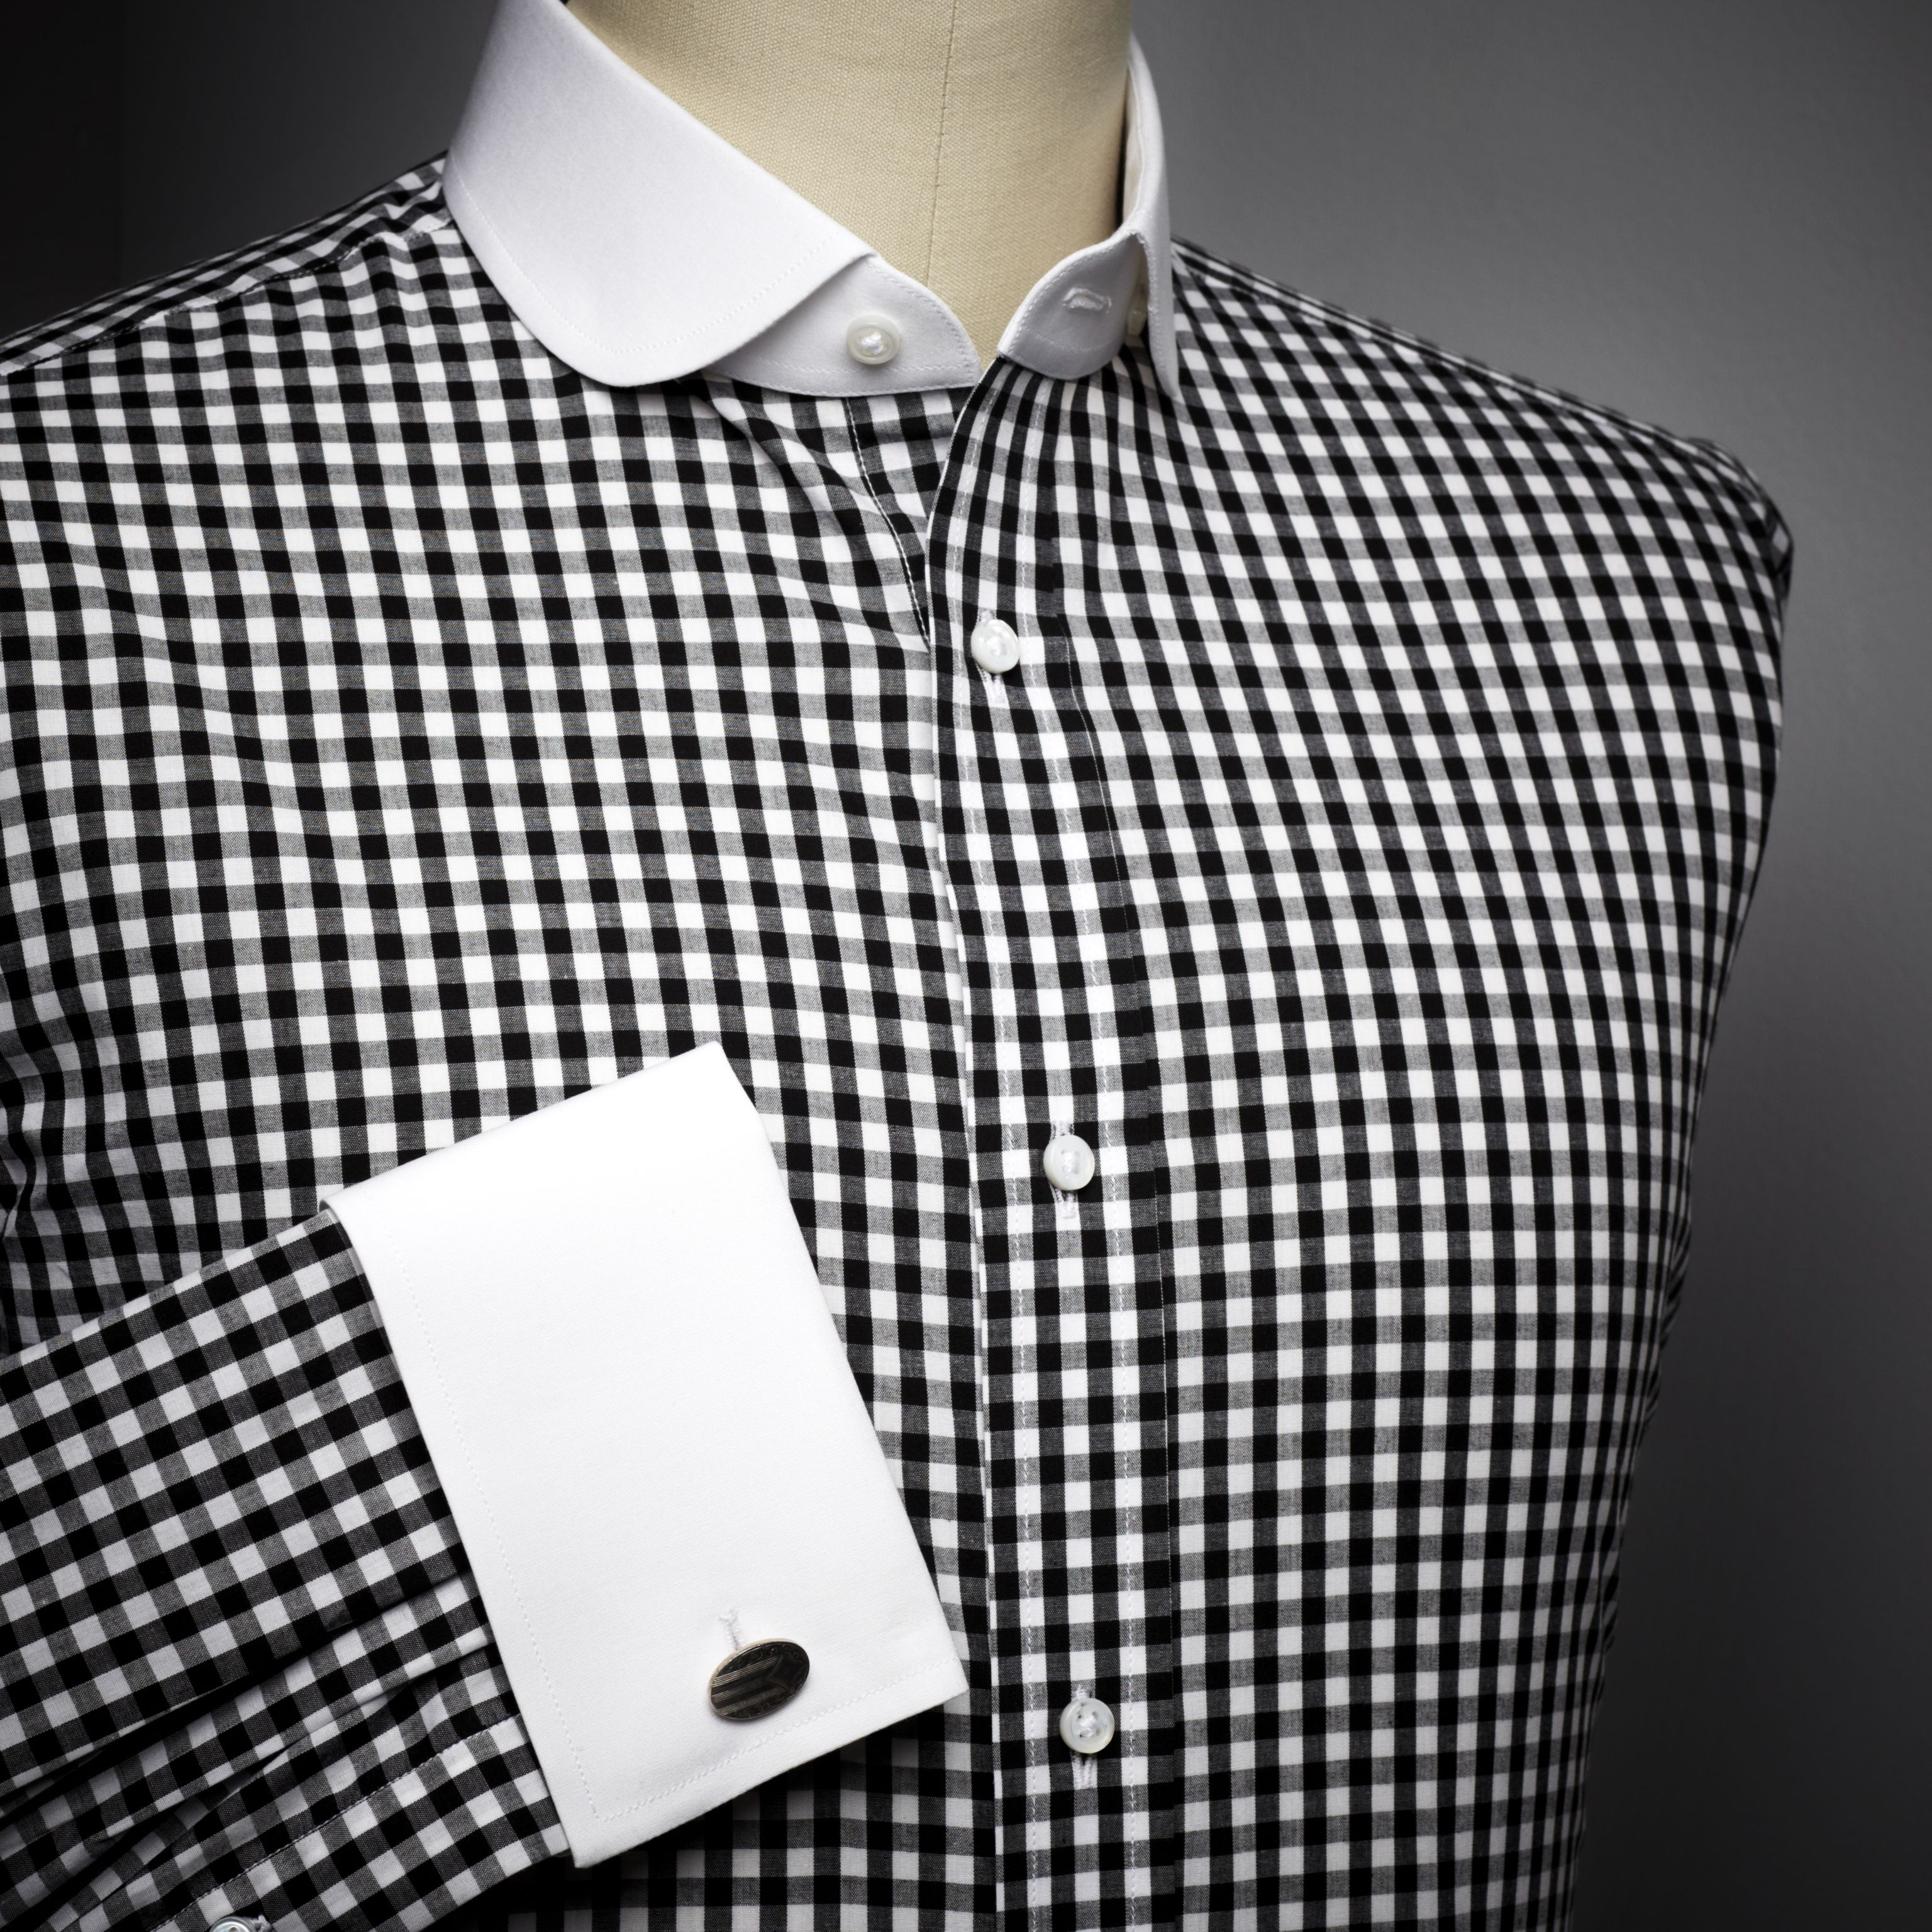 Alexander Nash Black & white gingham shirt with white club